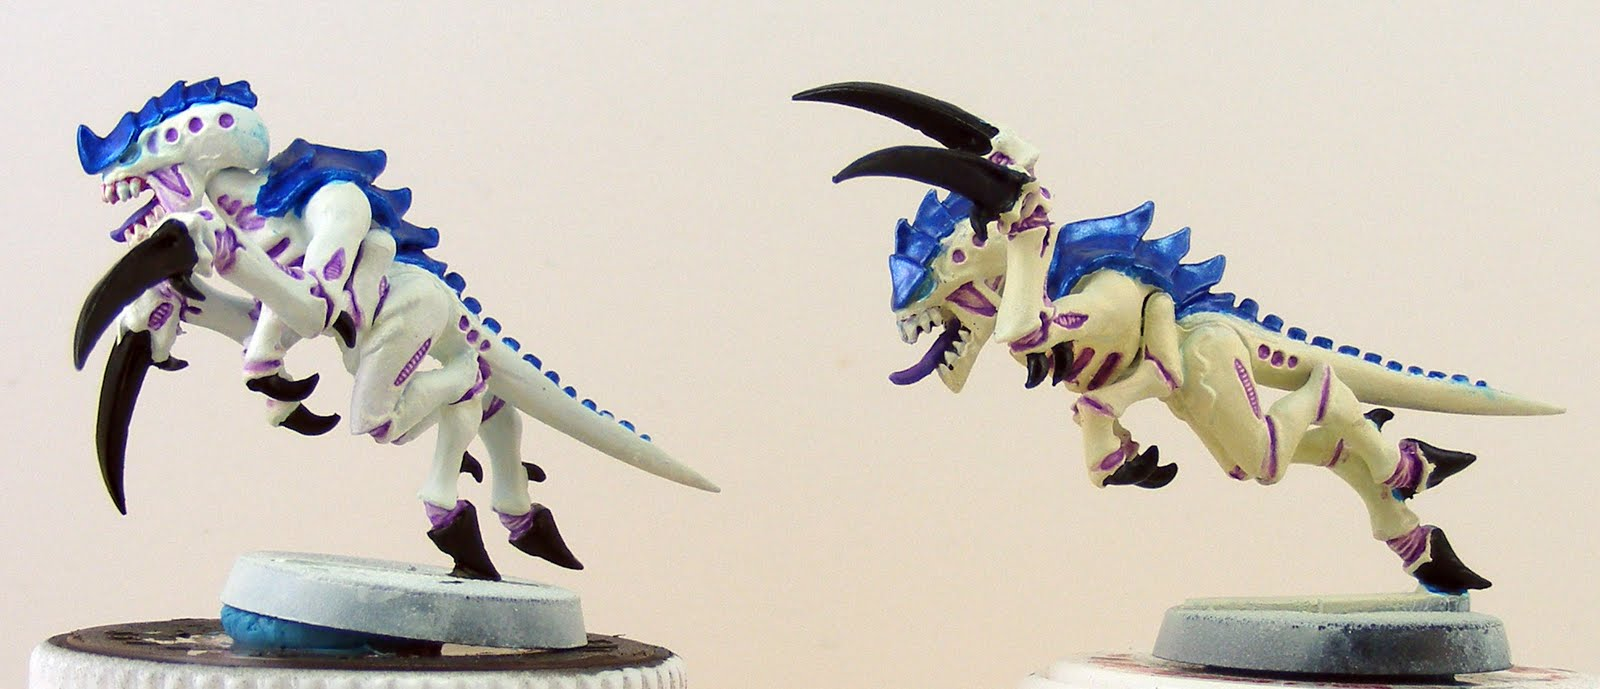 Maximum Heresy: Tyranid painting: test models completed